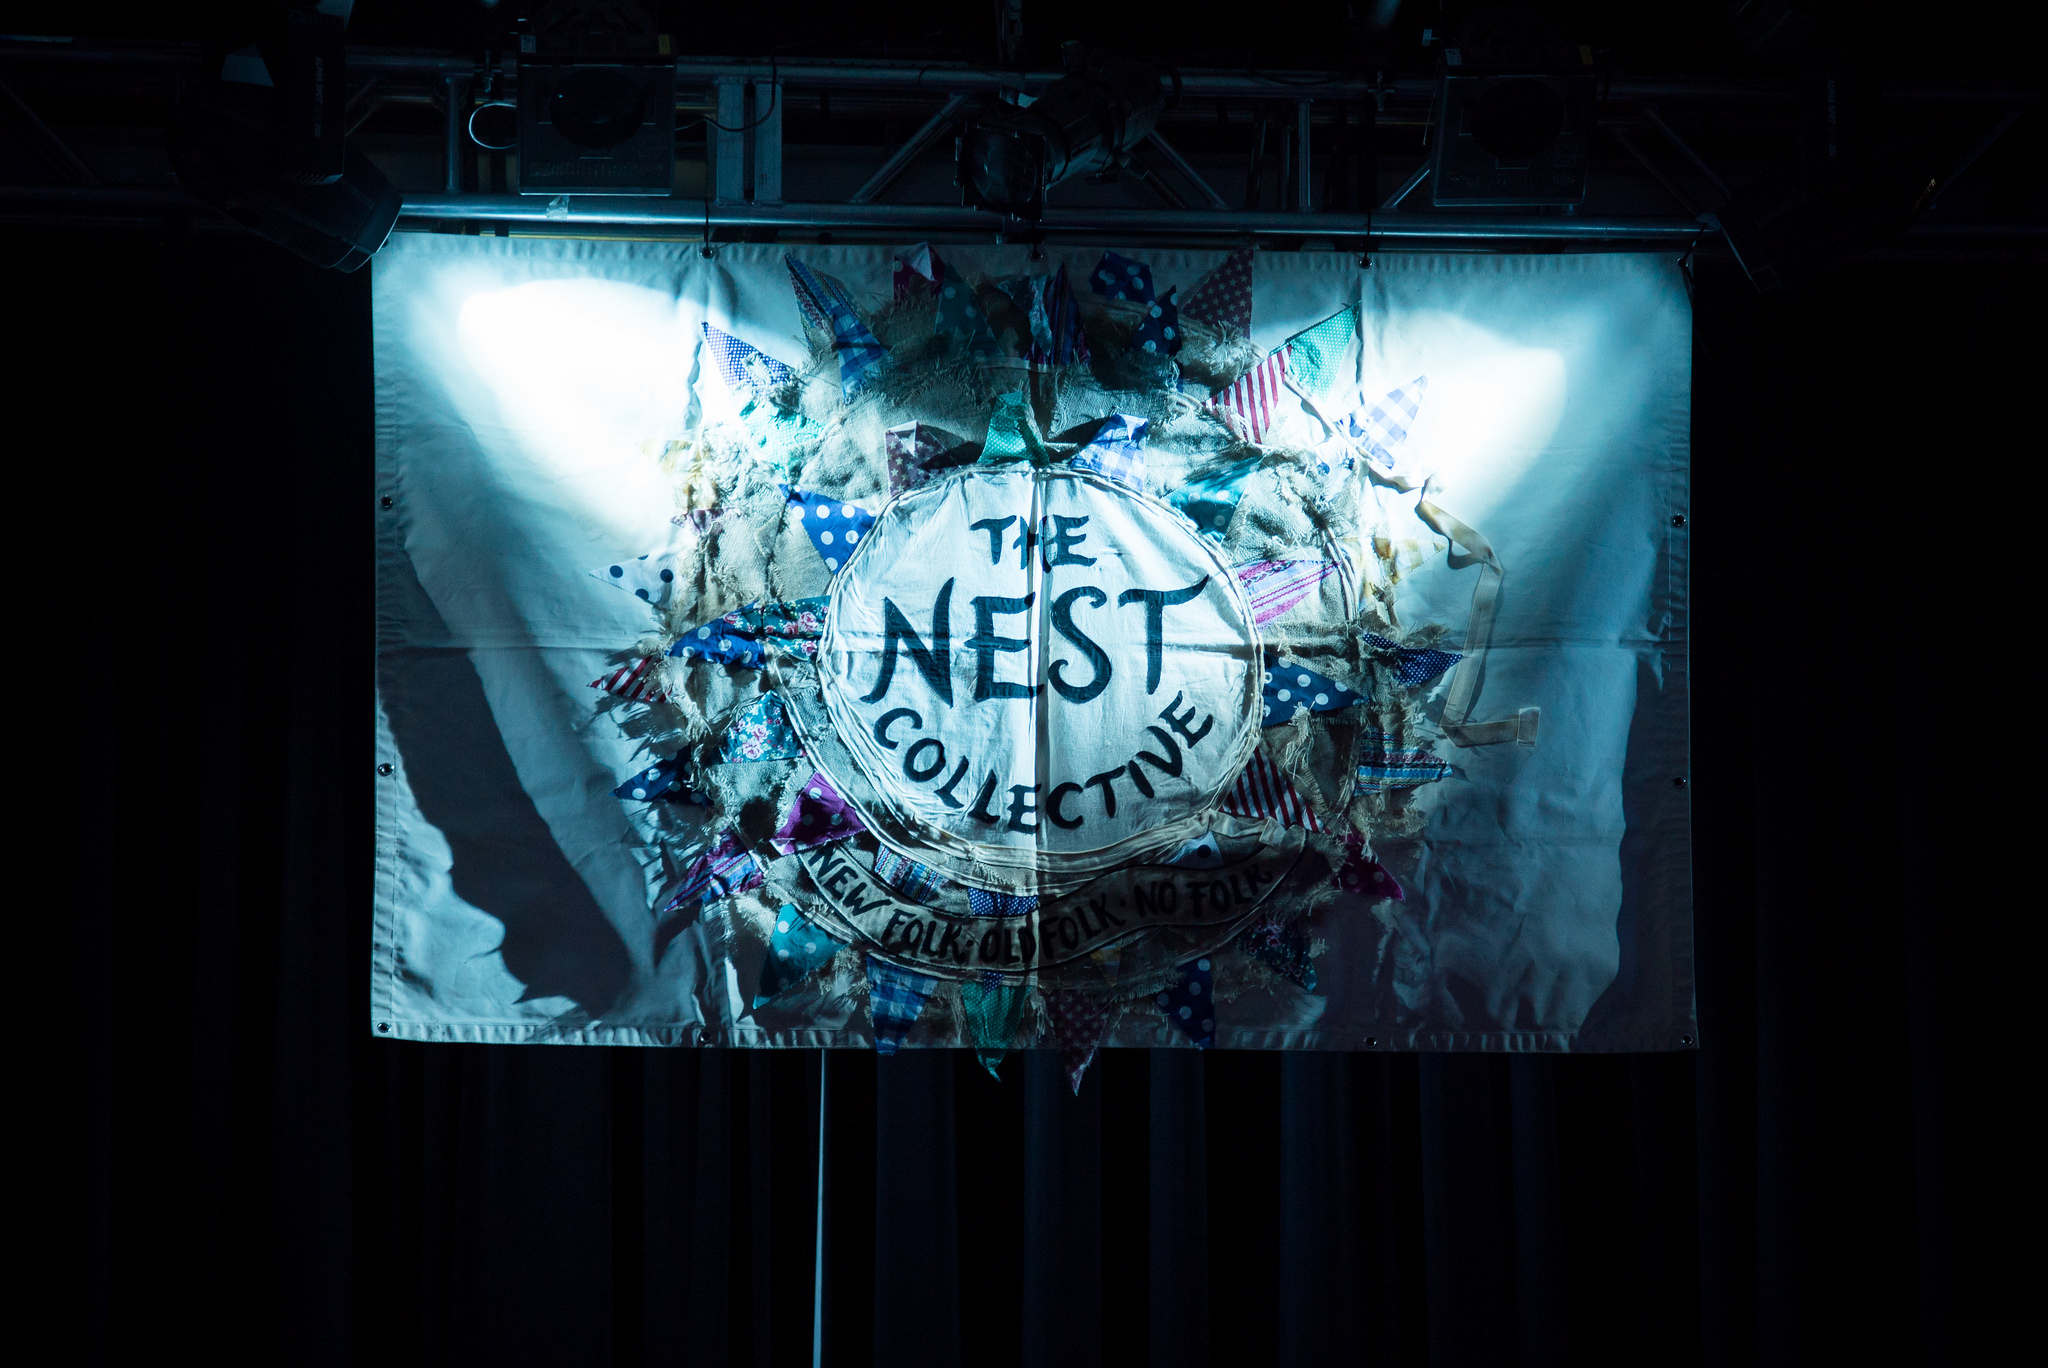 The Nest Collective at the Royal Festival Hall